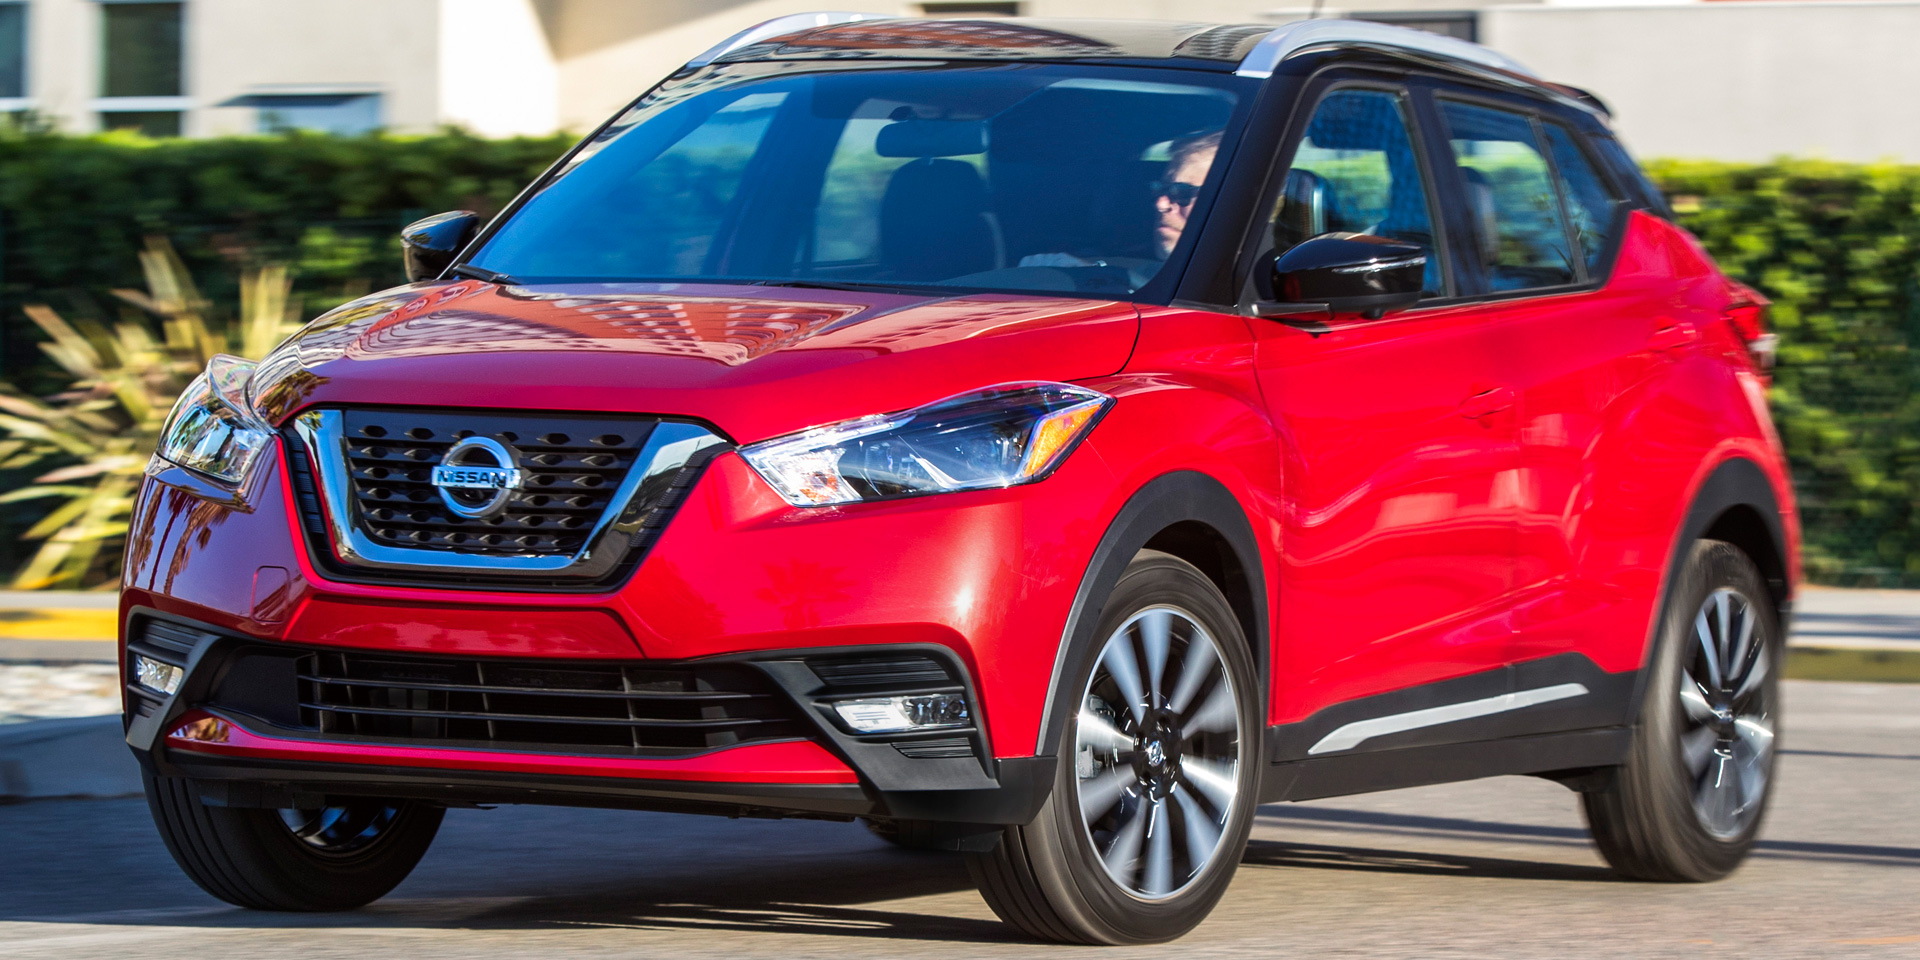 Mercedes Benz Of Chicago >> 2019 - Nissan - Kicks - Vehicles on Display | Chicago Auto Show